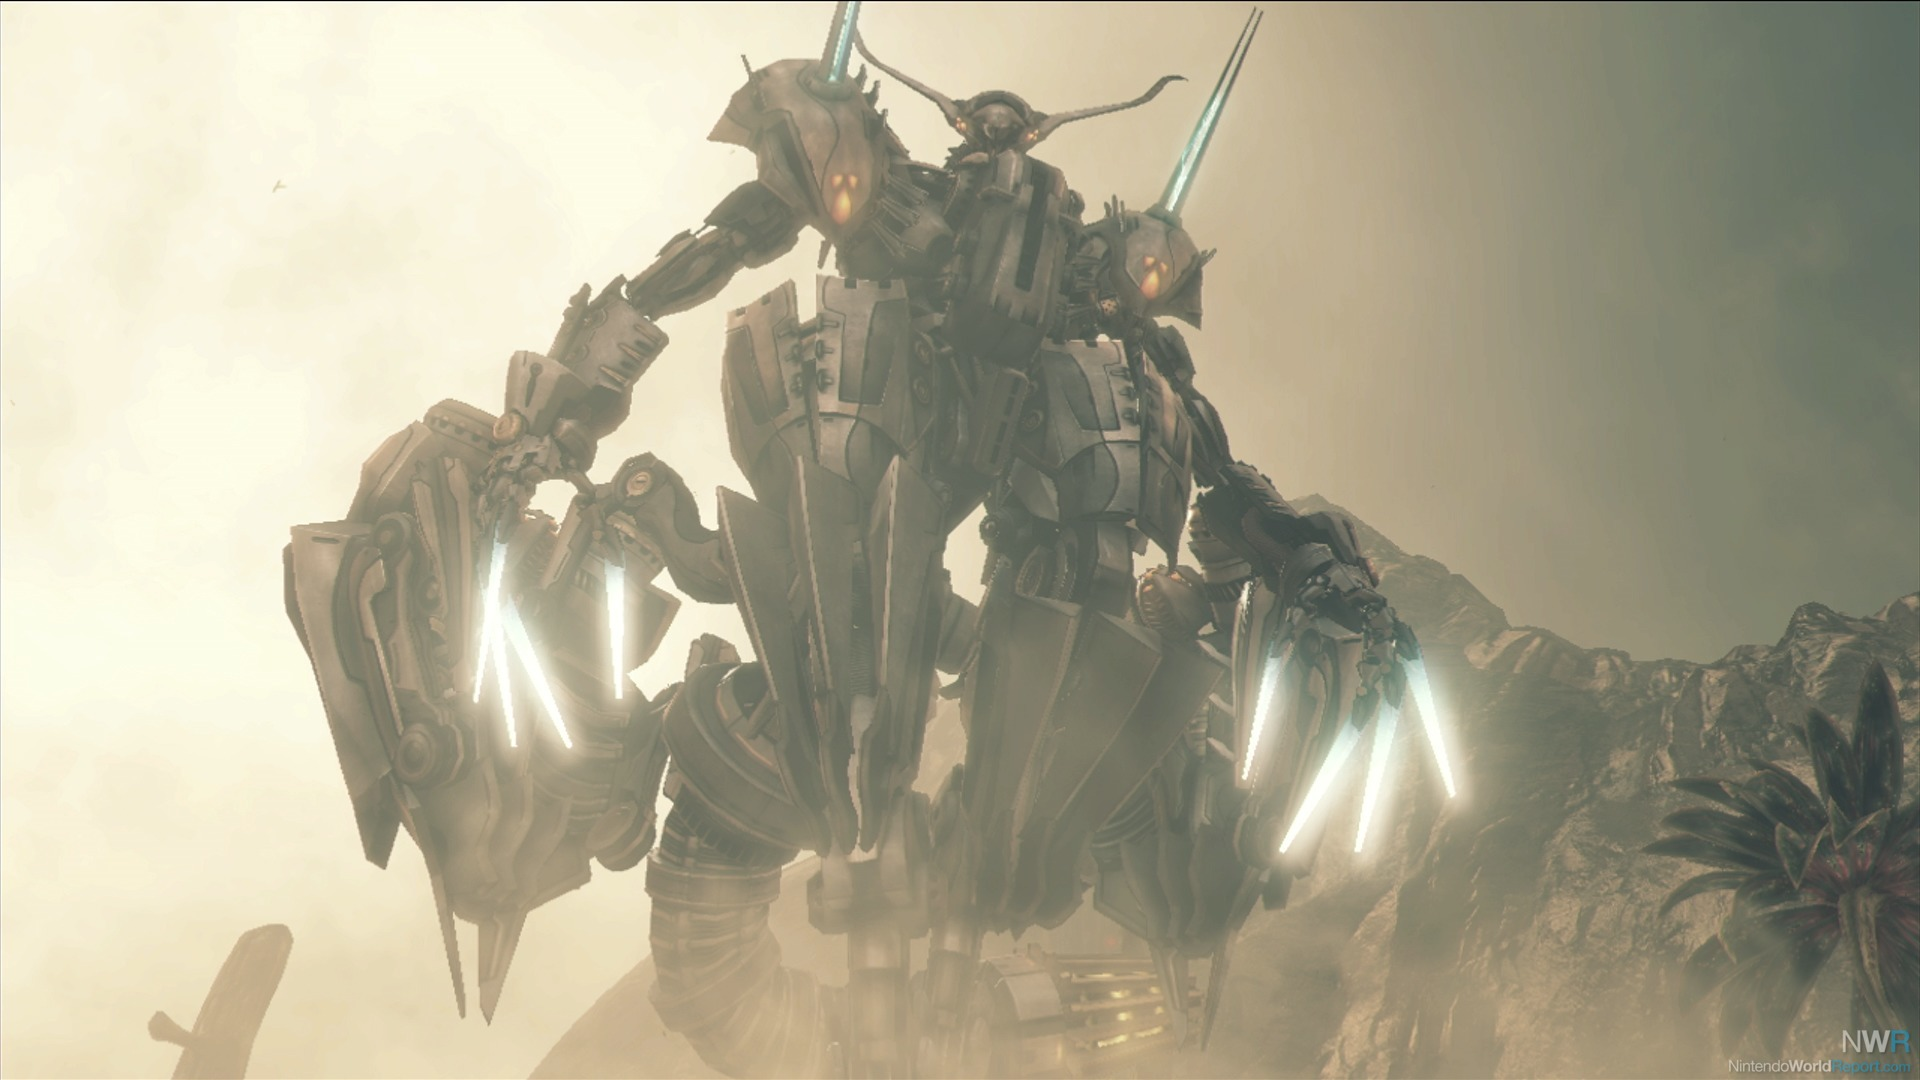 Xenoblade chronicles x gets limited editions wii download of xenoblade chronicles x gets limited editions wii download of original in europeaustralia news nintendo world report gumiabroncs Image collections